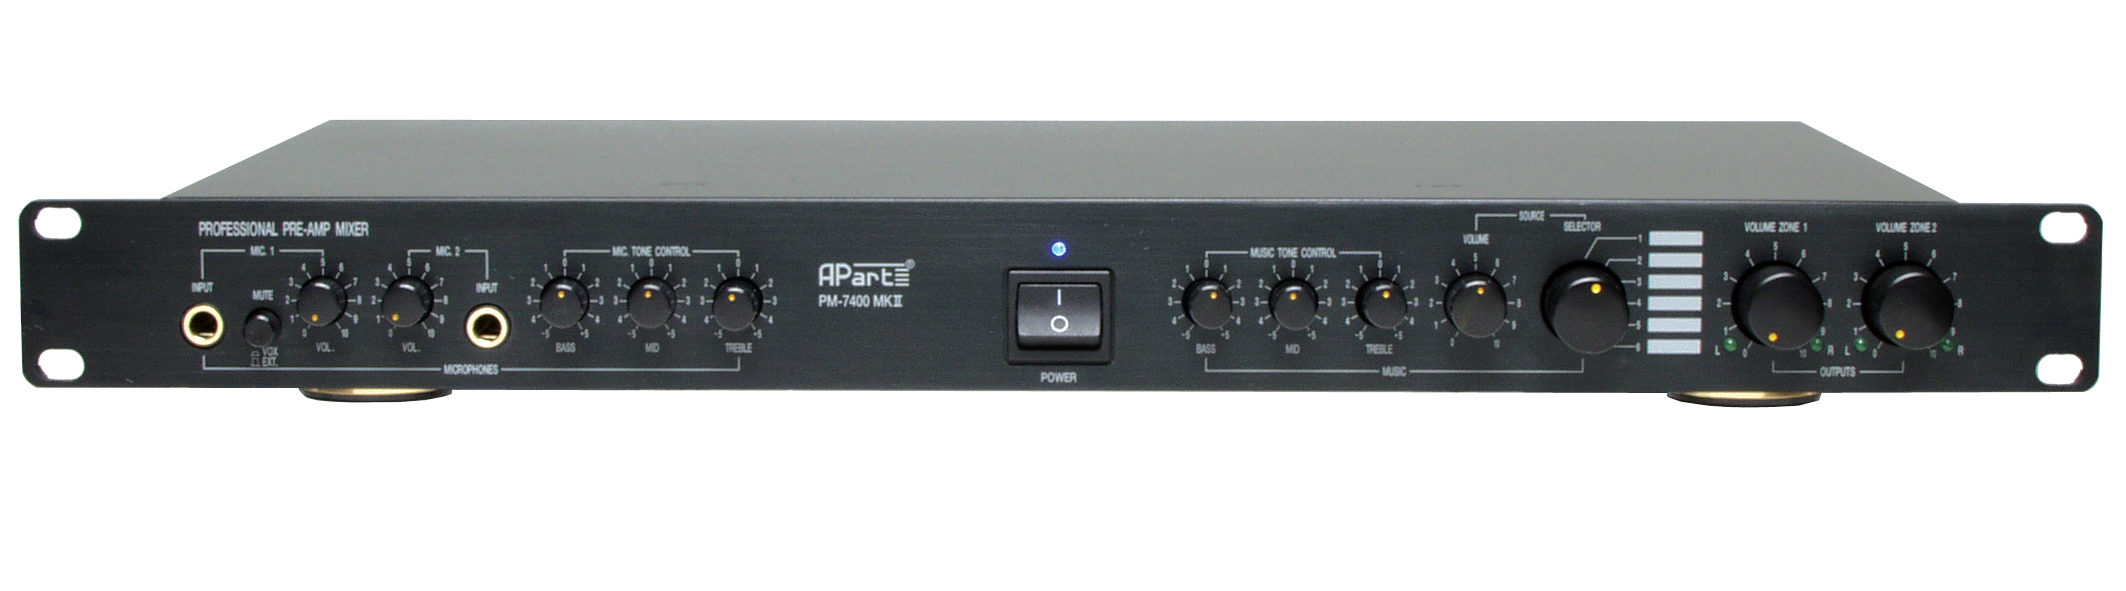 Apart Pm7400mkii Microphone Pre Amplifier With Tone Control